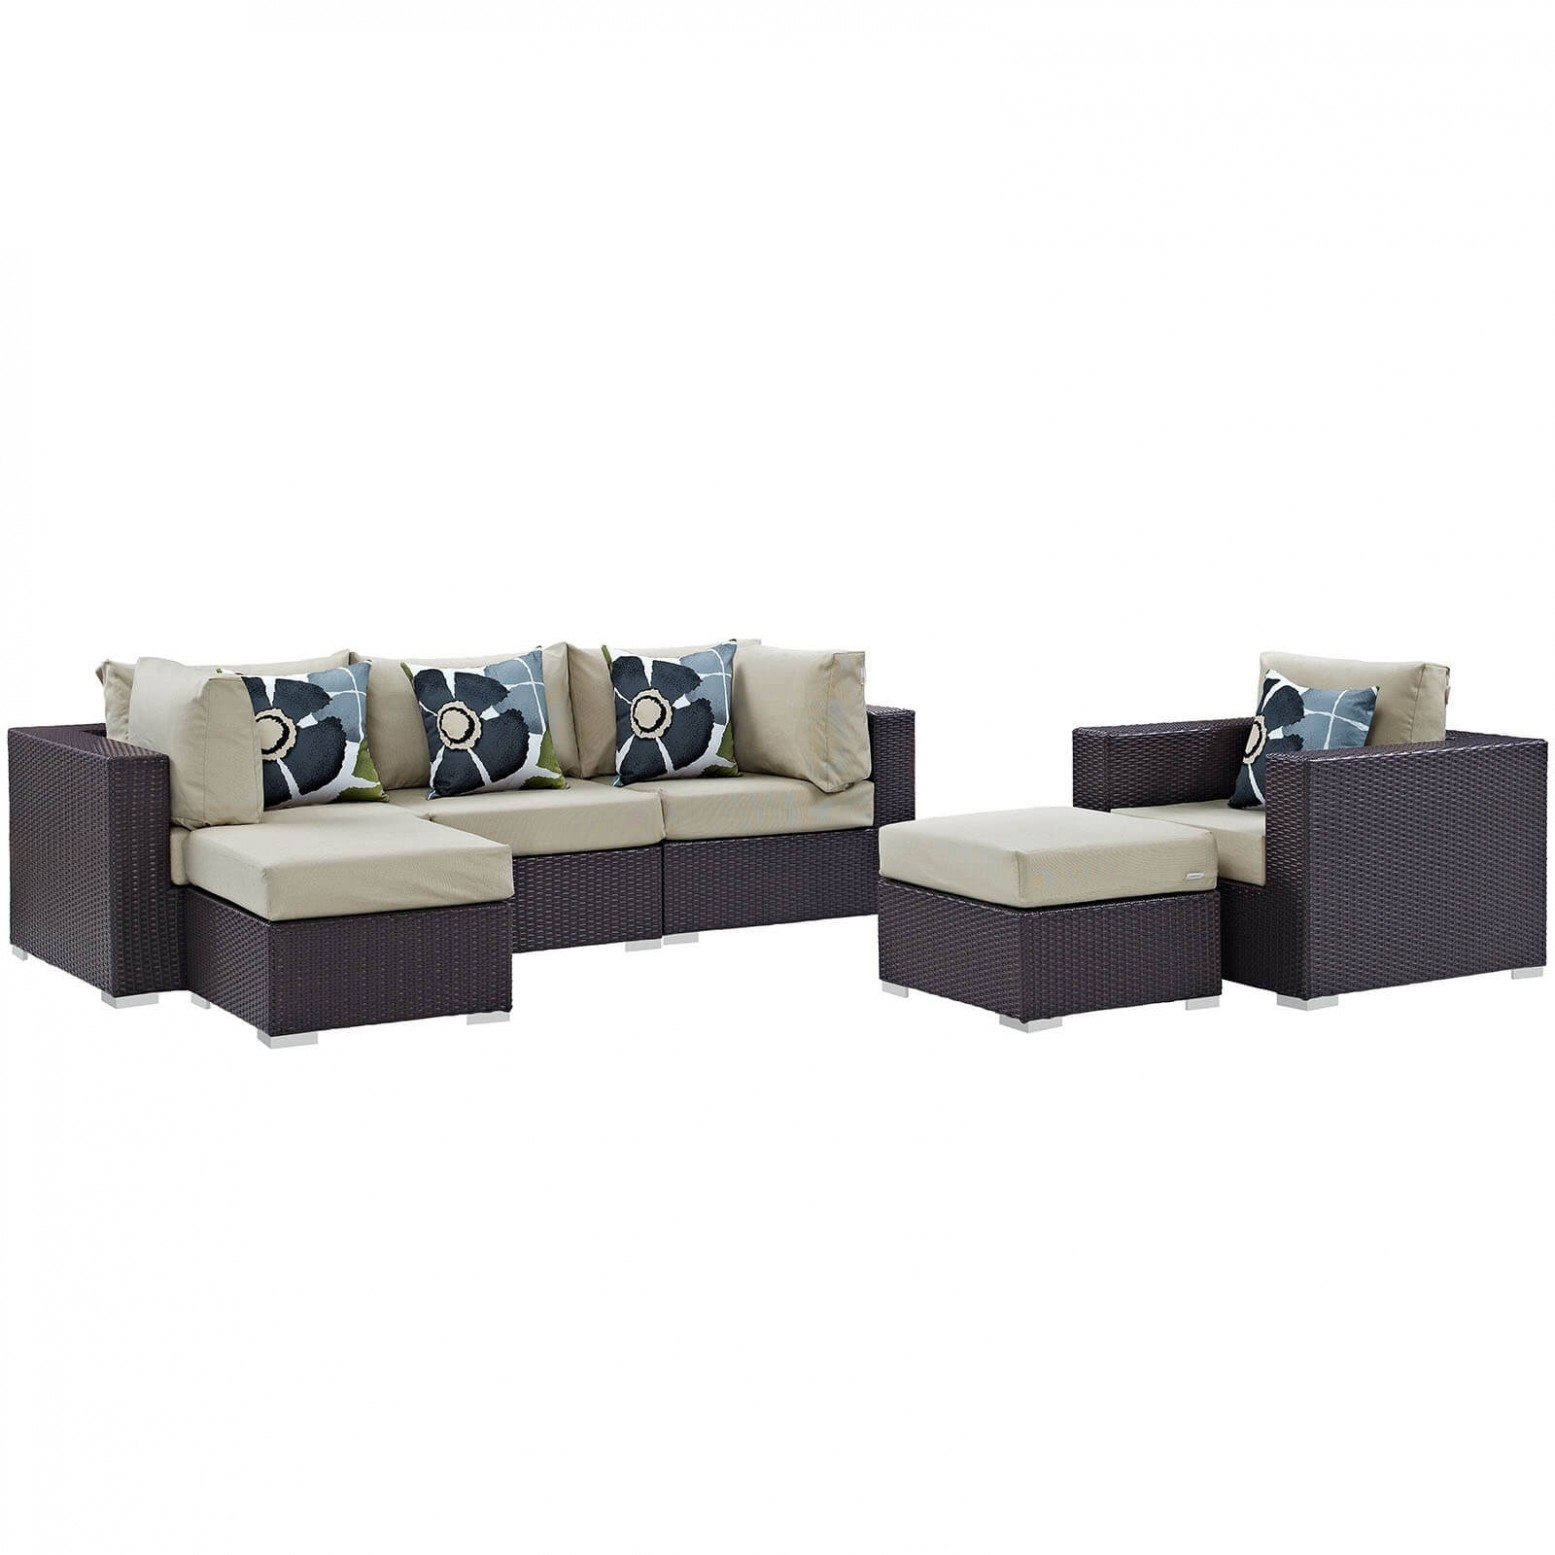 6 Piece Outdoor Patio Sectional Set